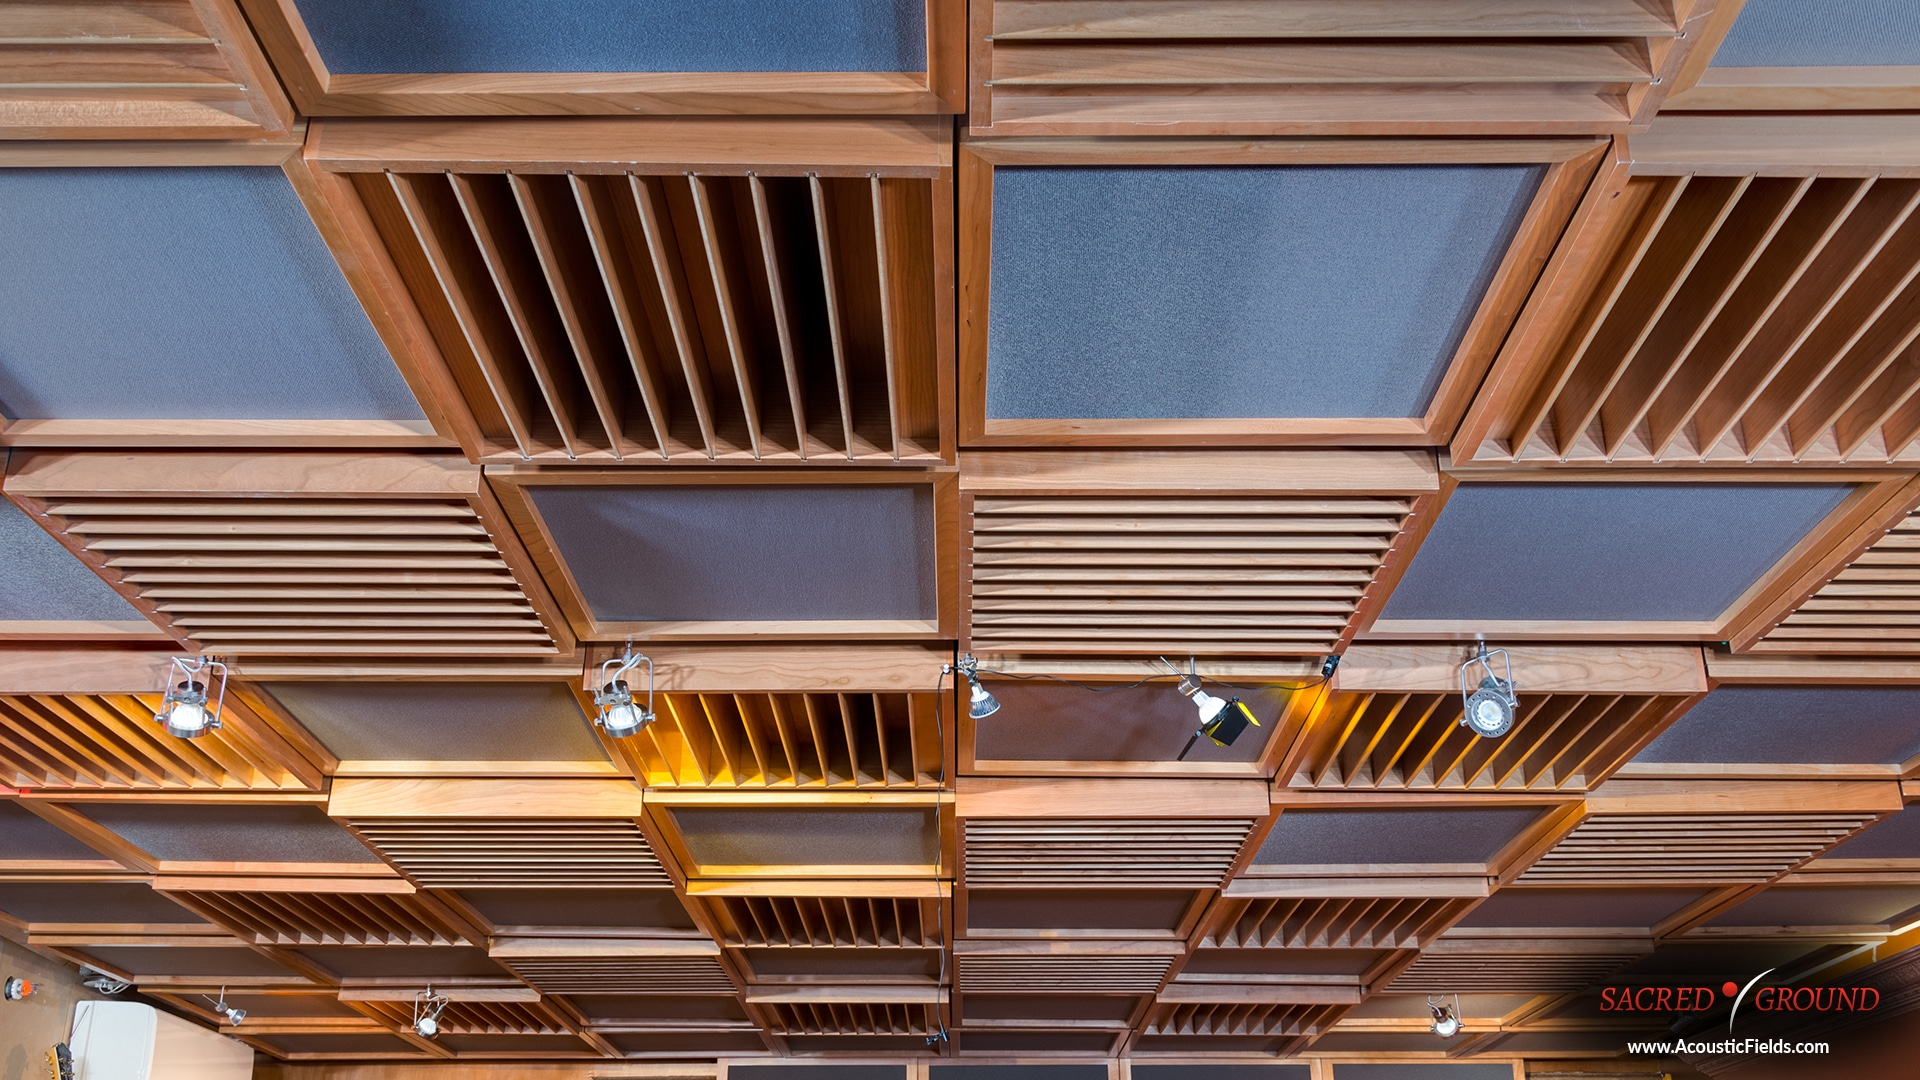 Acoustic ceiling treatment at sacred ground studios in hollywood